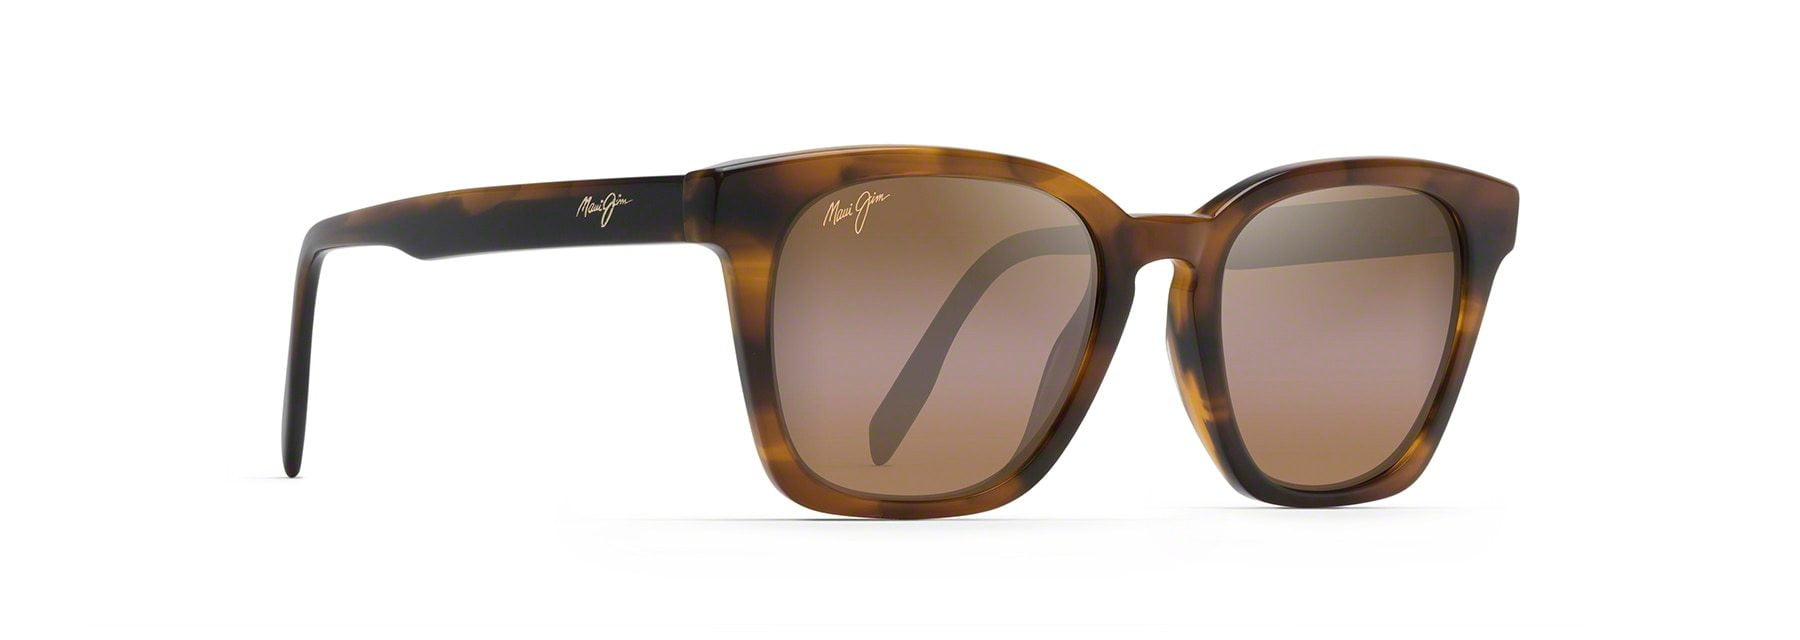 Maui Jim Shave Ice Sunglasses